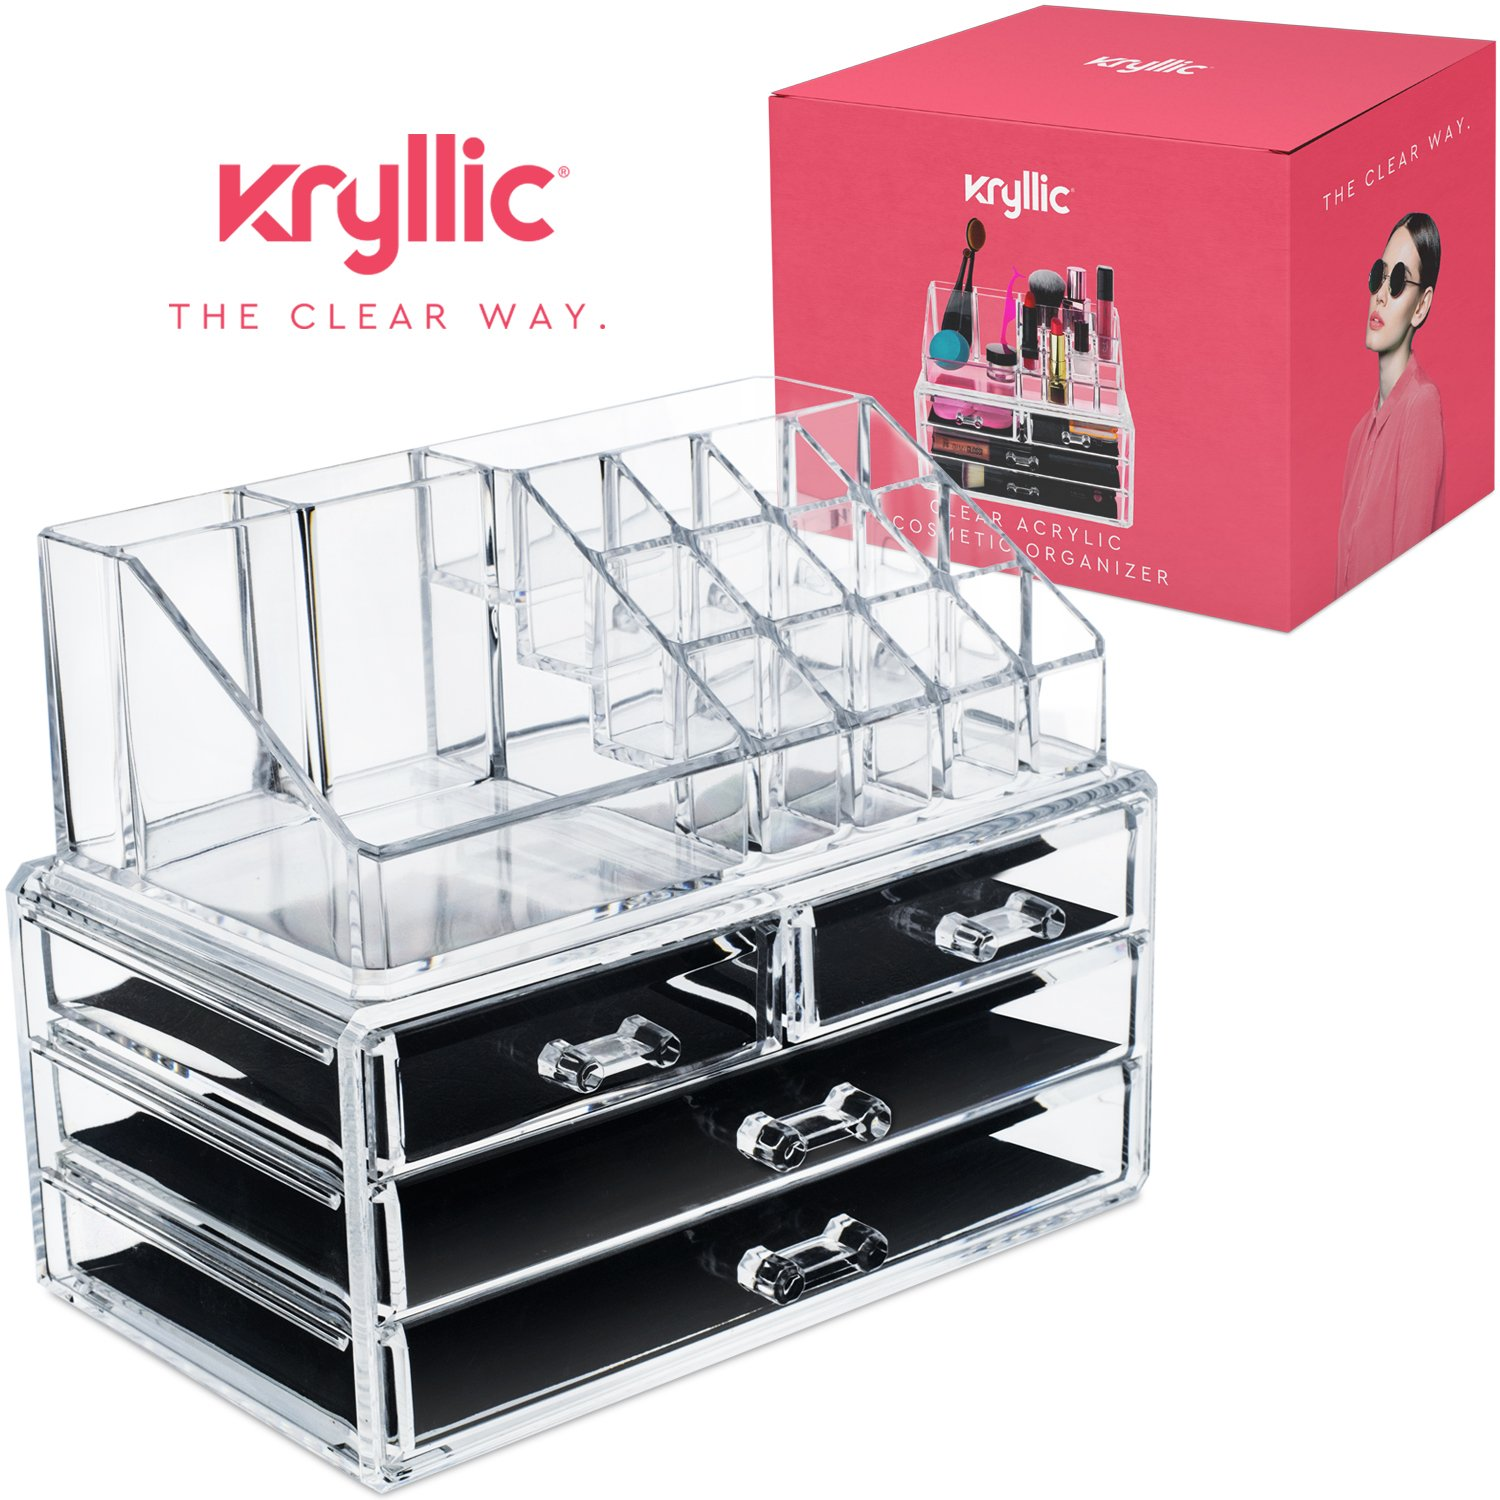 Lipstick bathroom set - Acrylic Jewelry Cosmetic Vanity Organizer Great Box For Organizing Your Lipstick Nail Polish Makeup Brushes